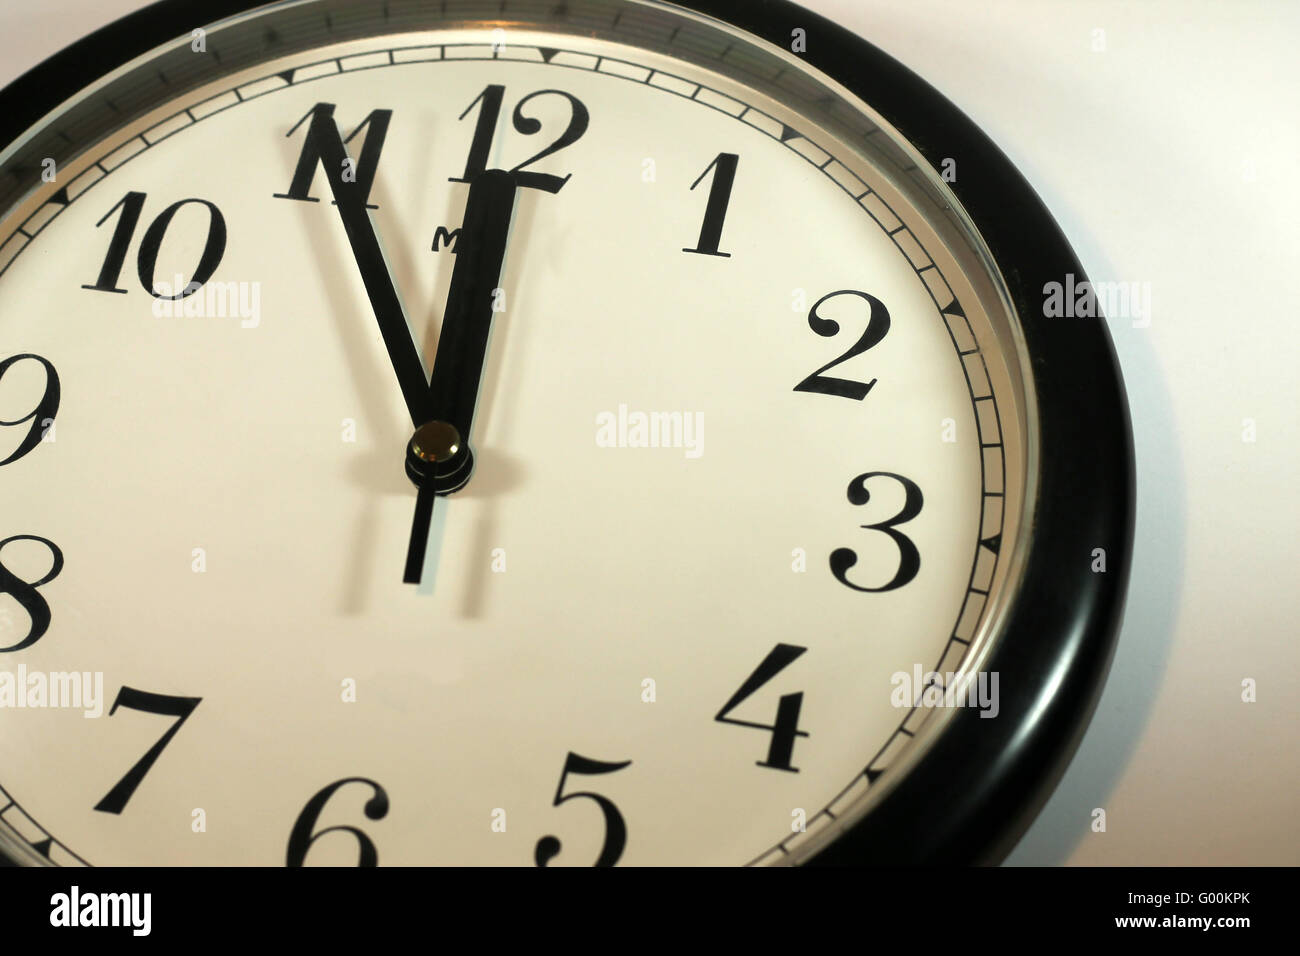 Time is running out - clock 11:55 - Stock Image